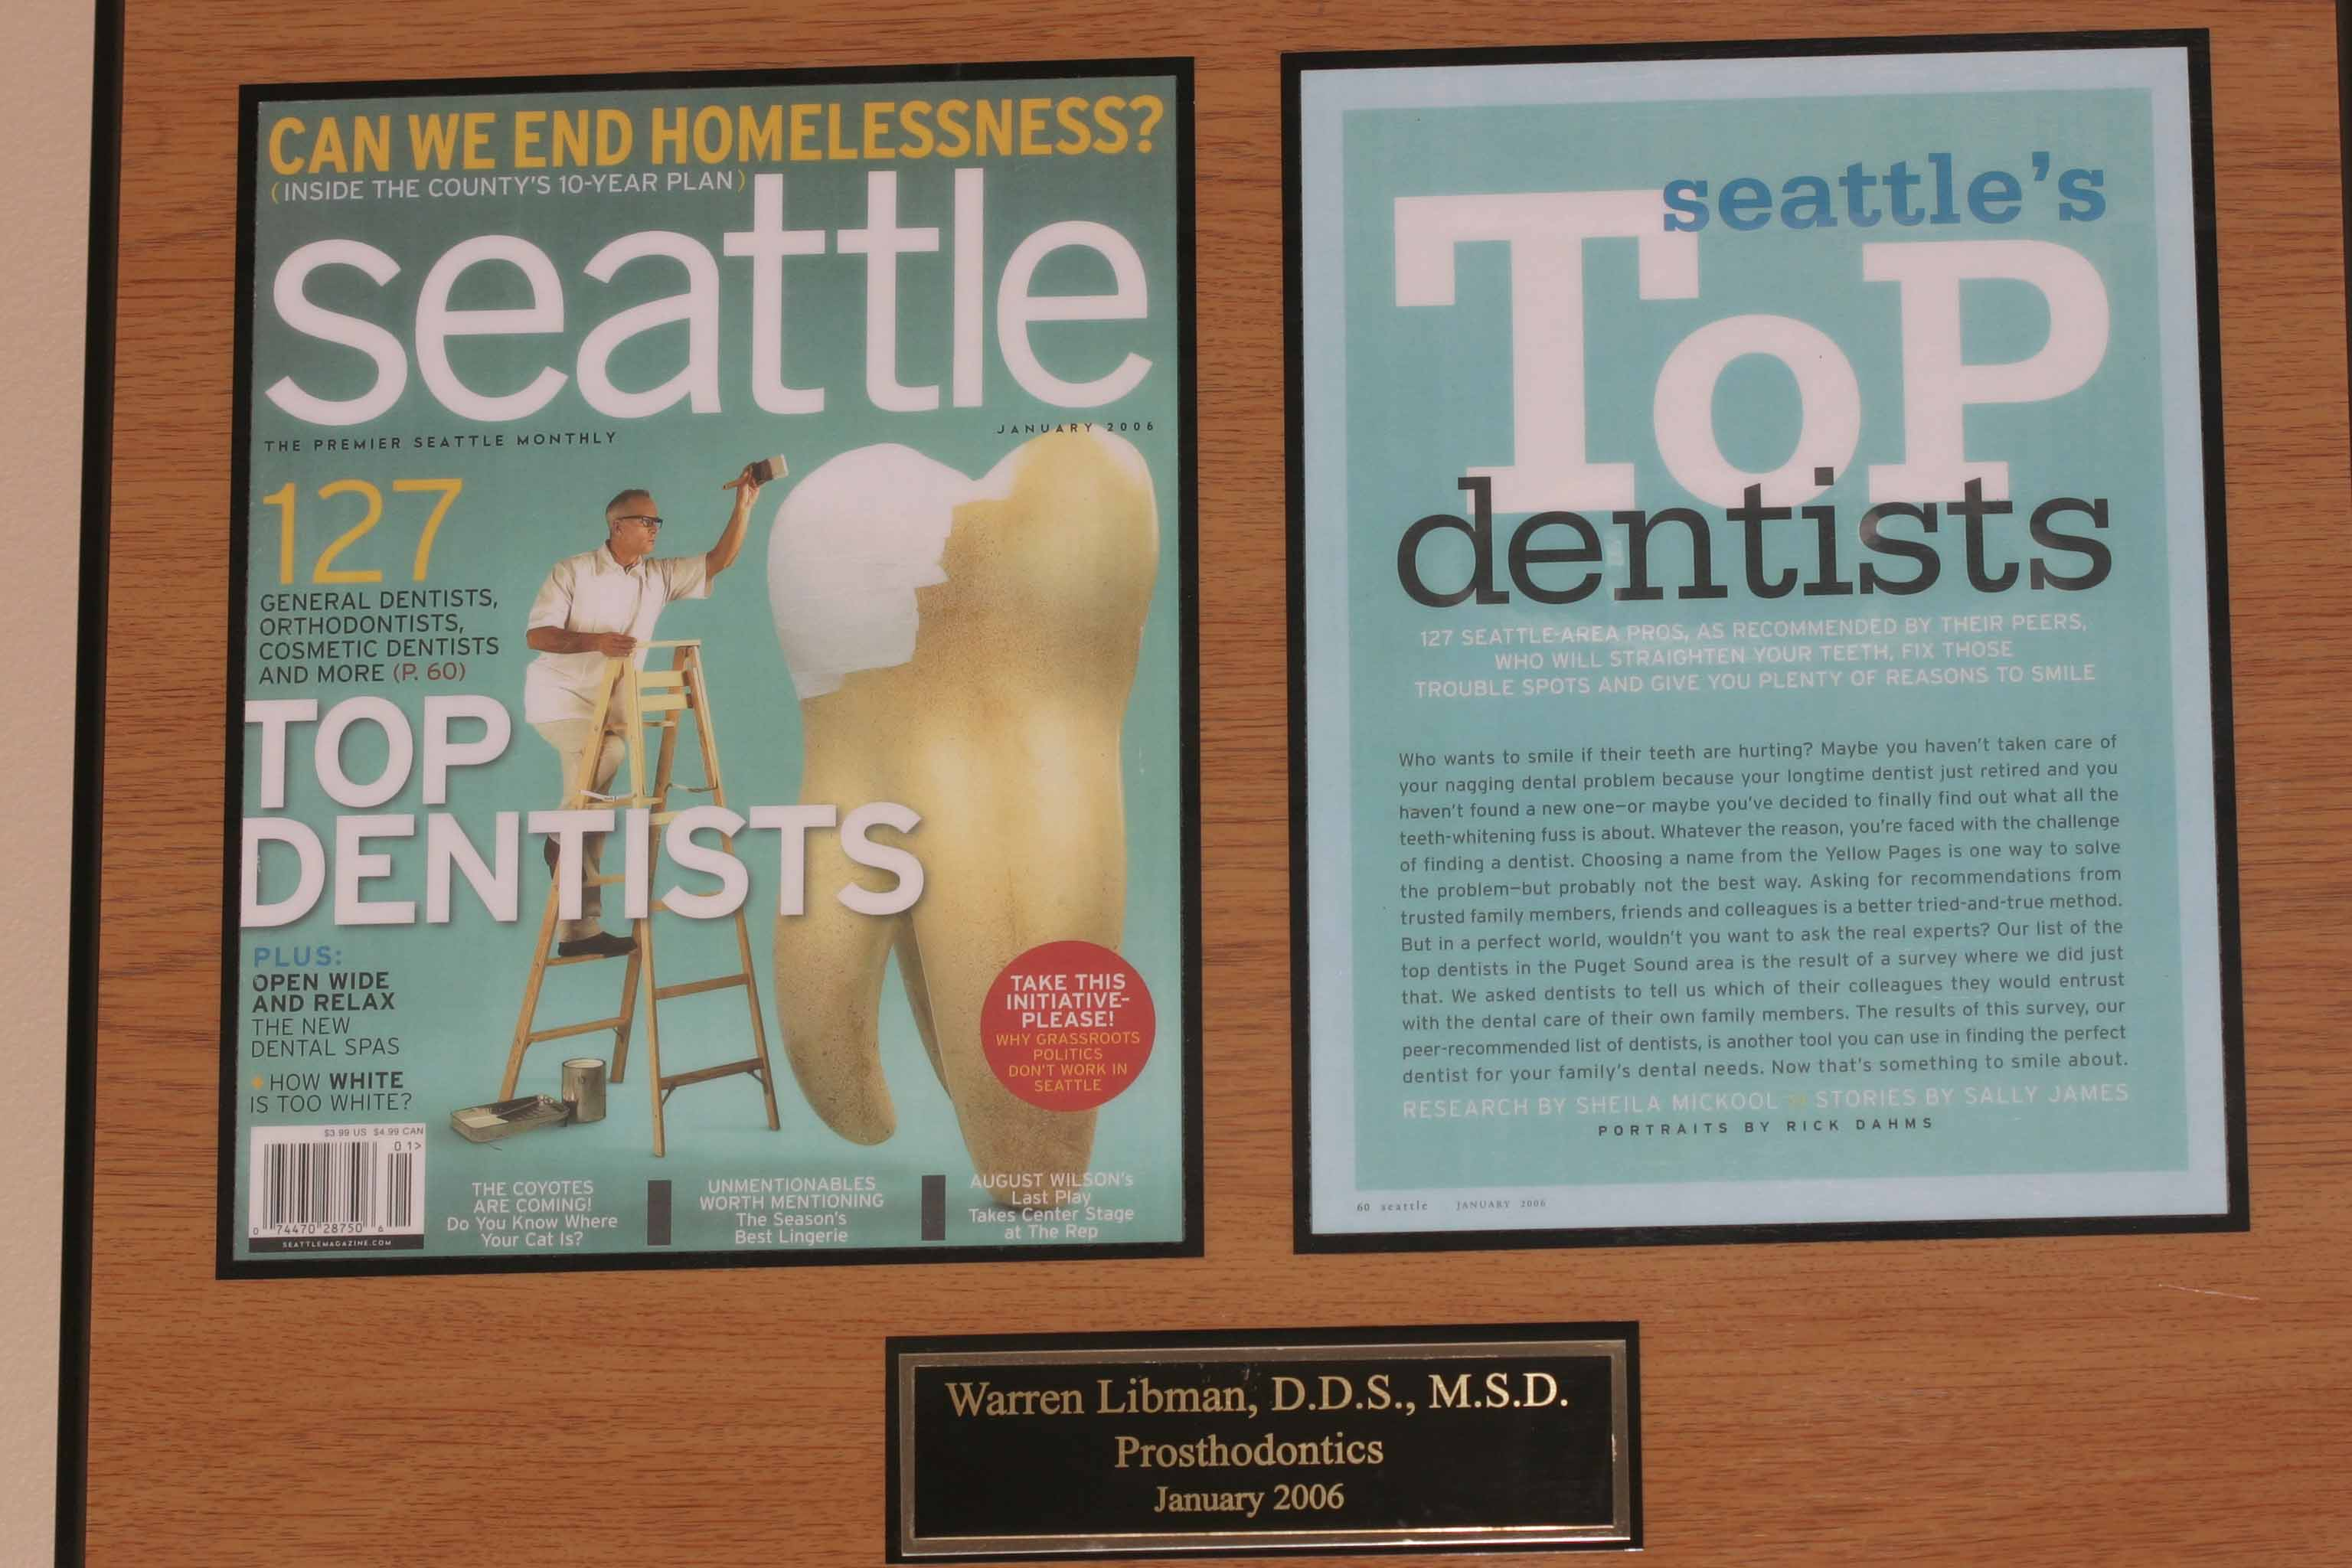 Seattle Top Dentists